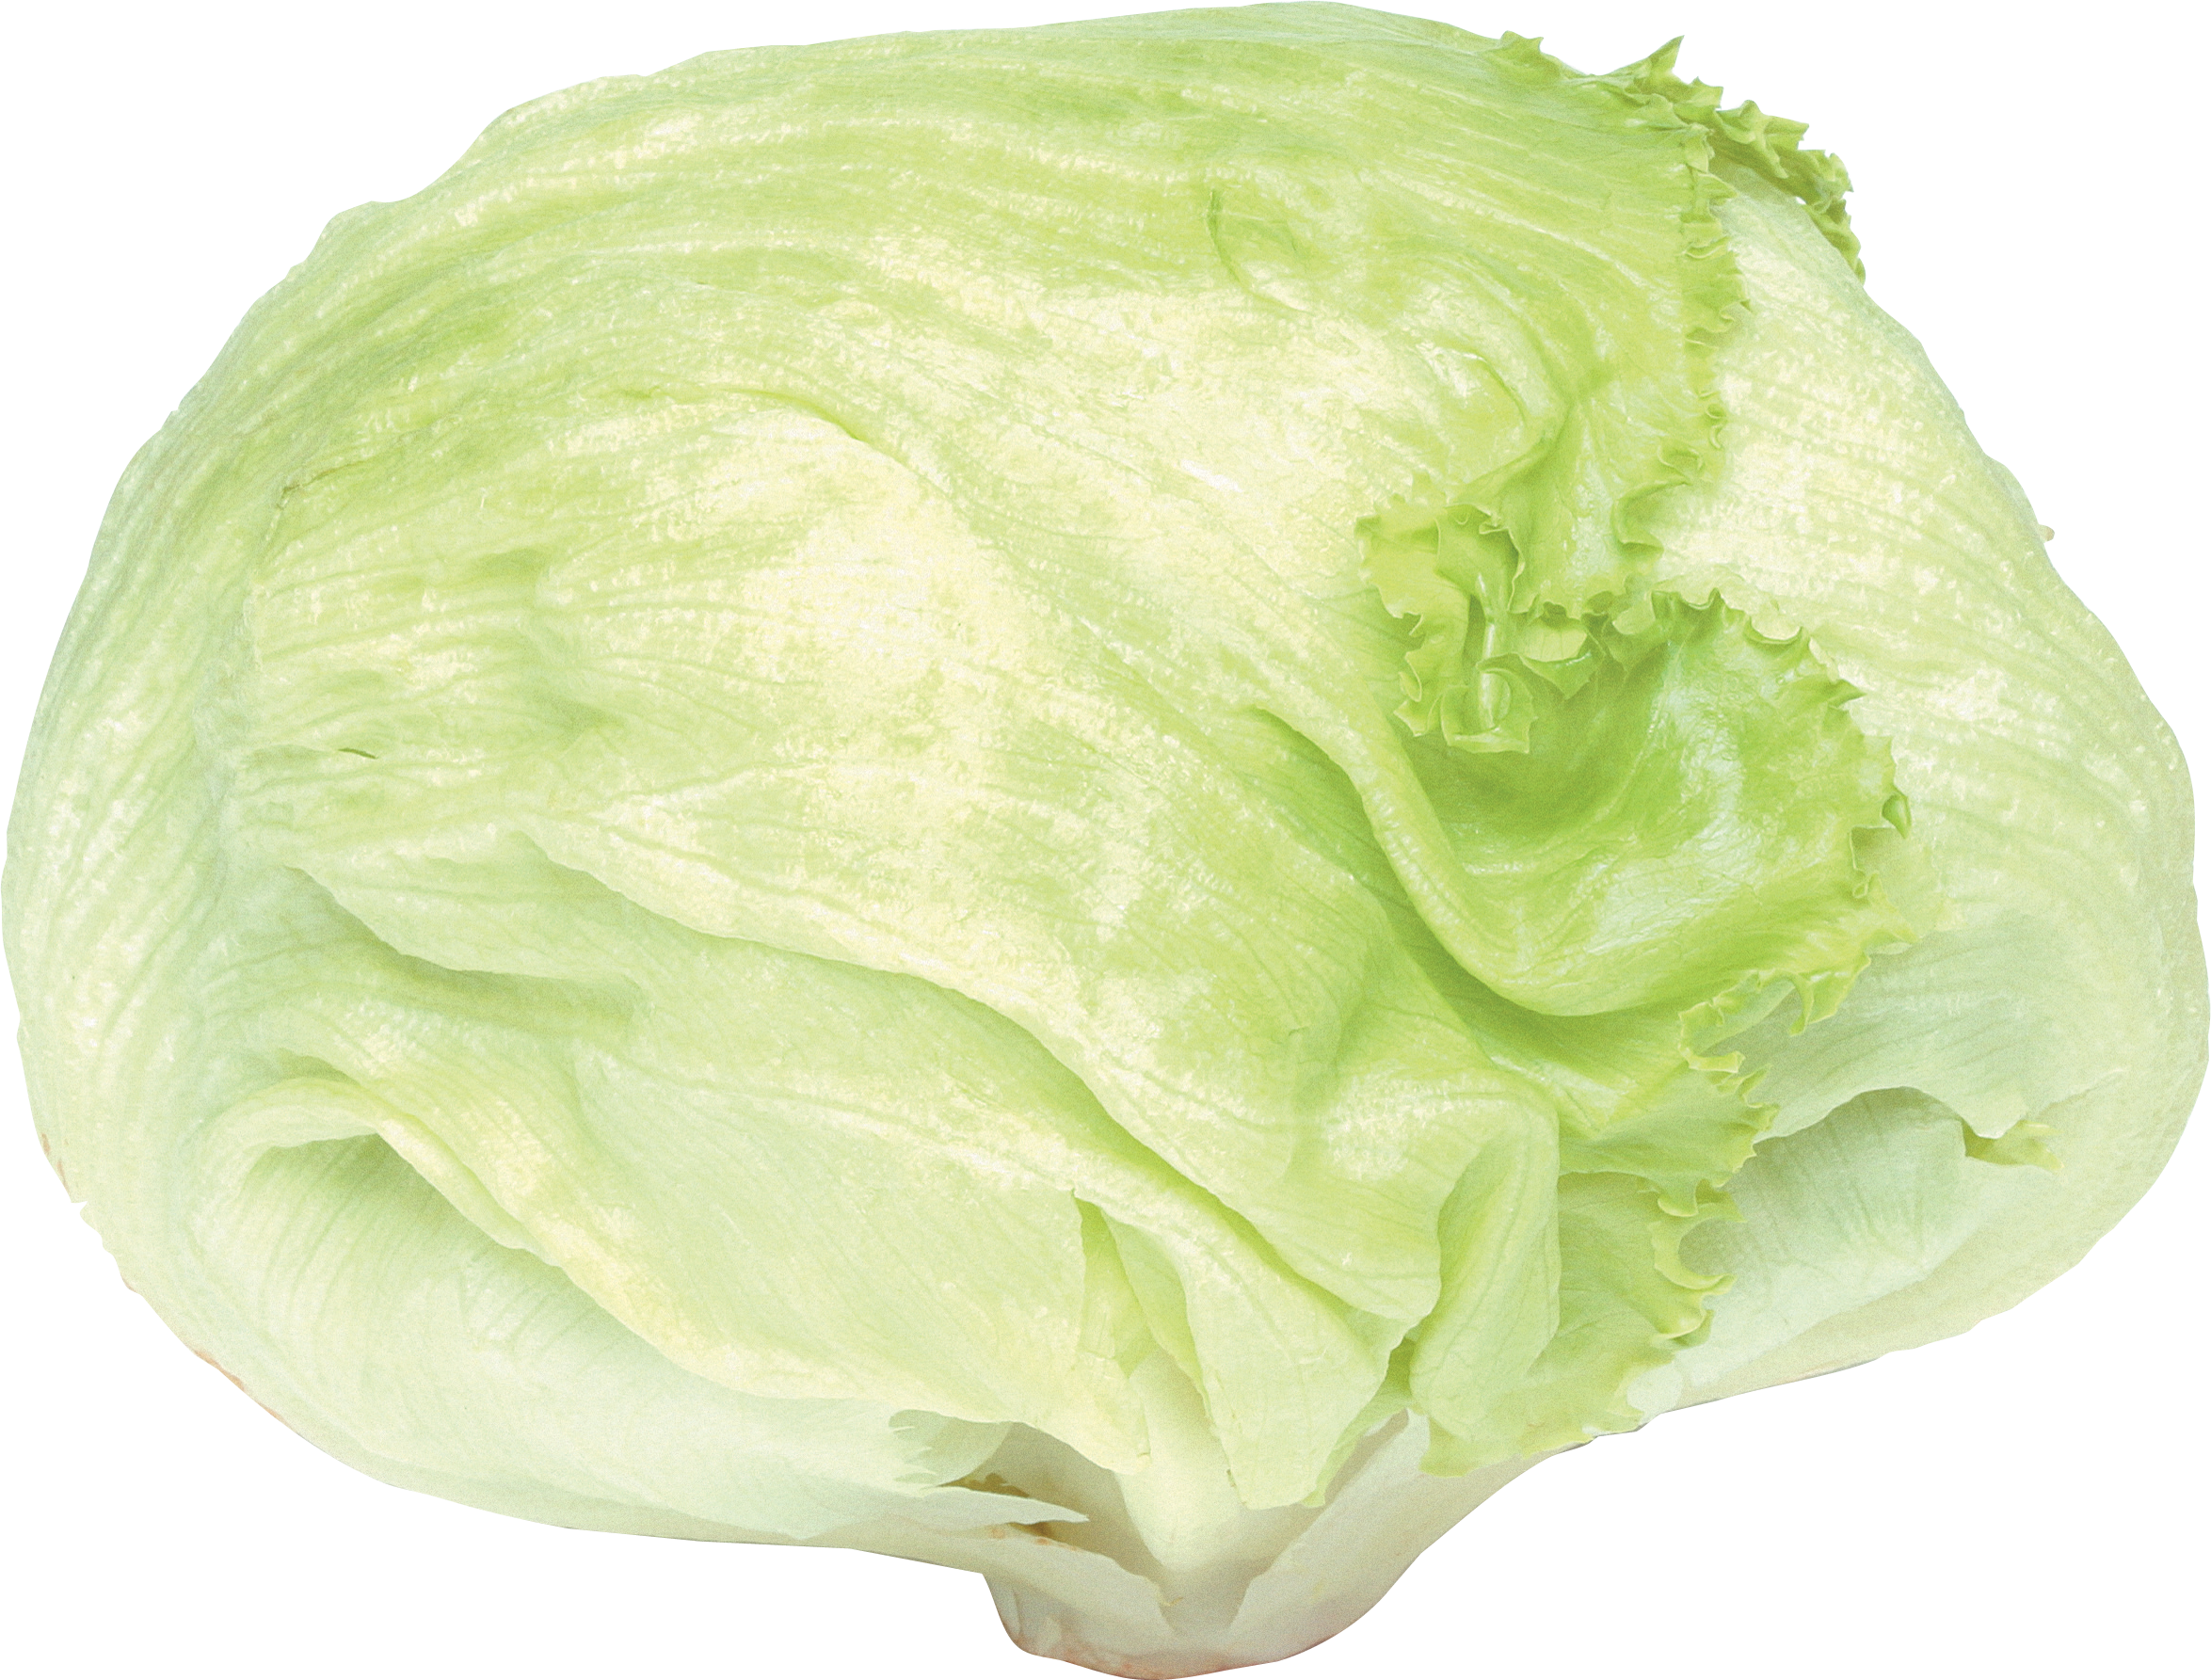 Vegetables plants. Cabbage plan view png graphic free download